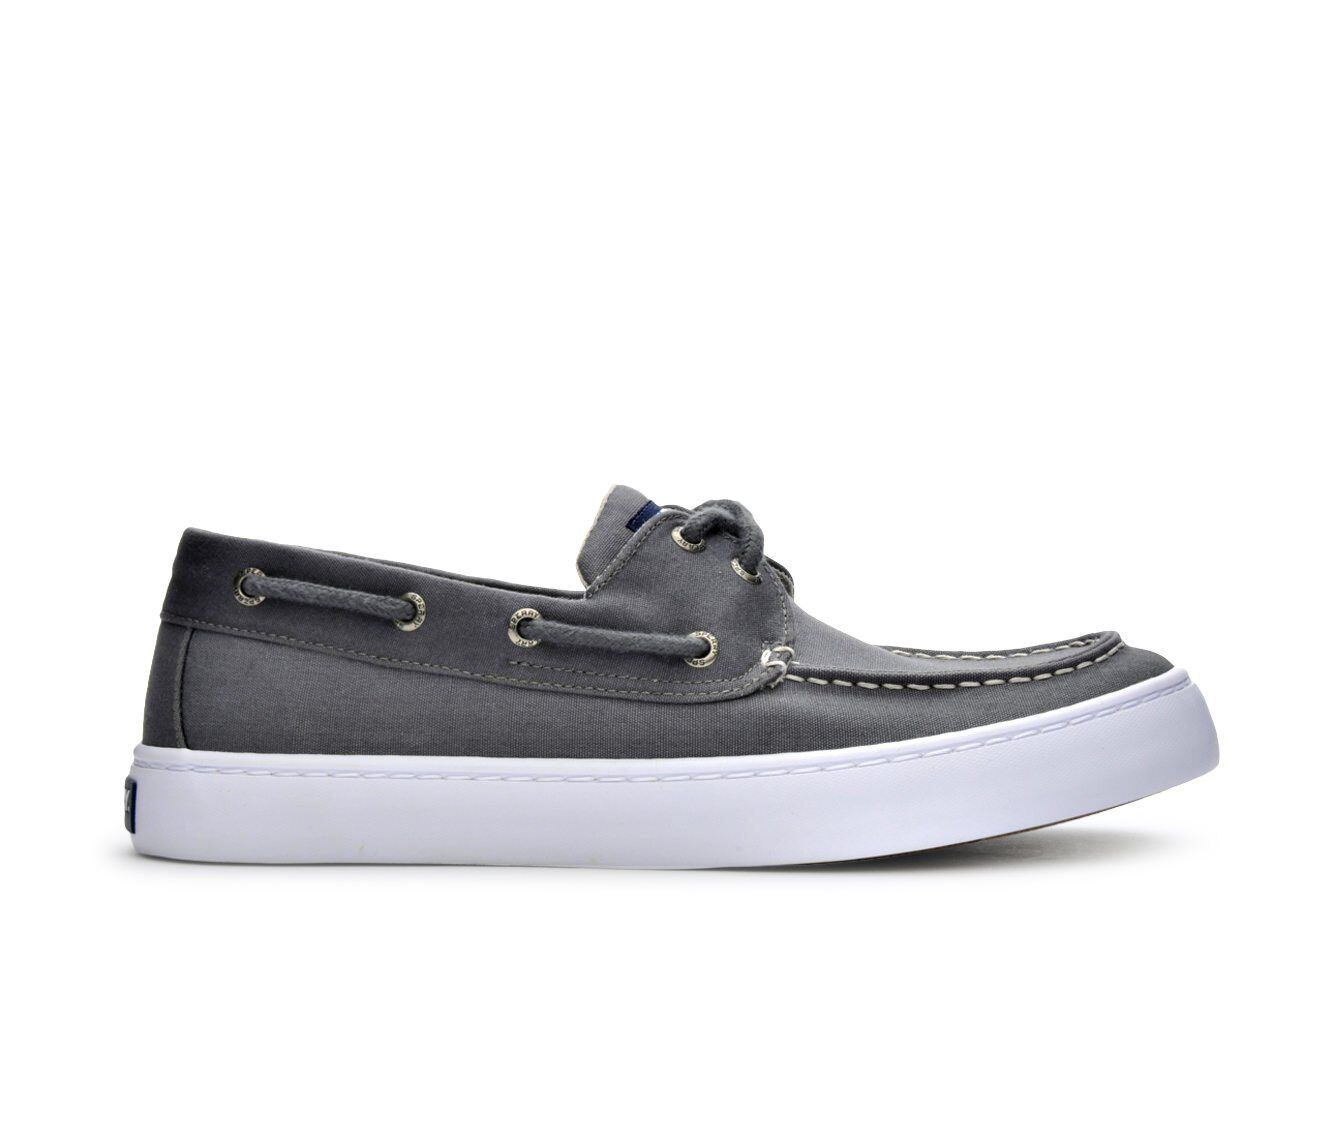 Men's Sperry Cutter 2 Eye Boat Shoes Grey/Charcoal